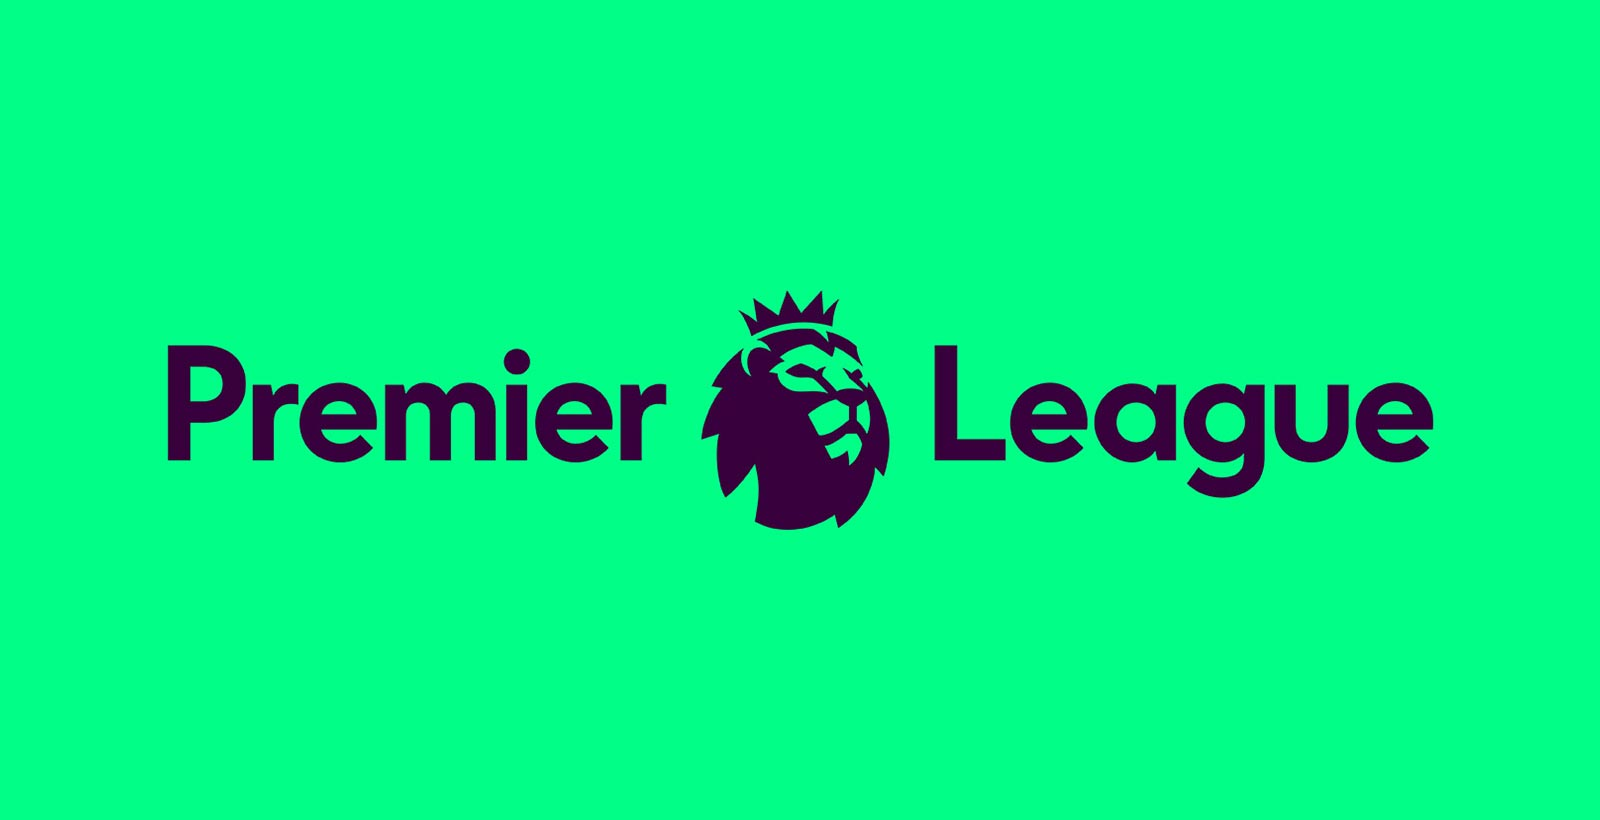 new-premier-league-logo-2016-17-9.jpg]